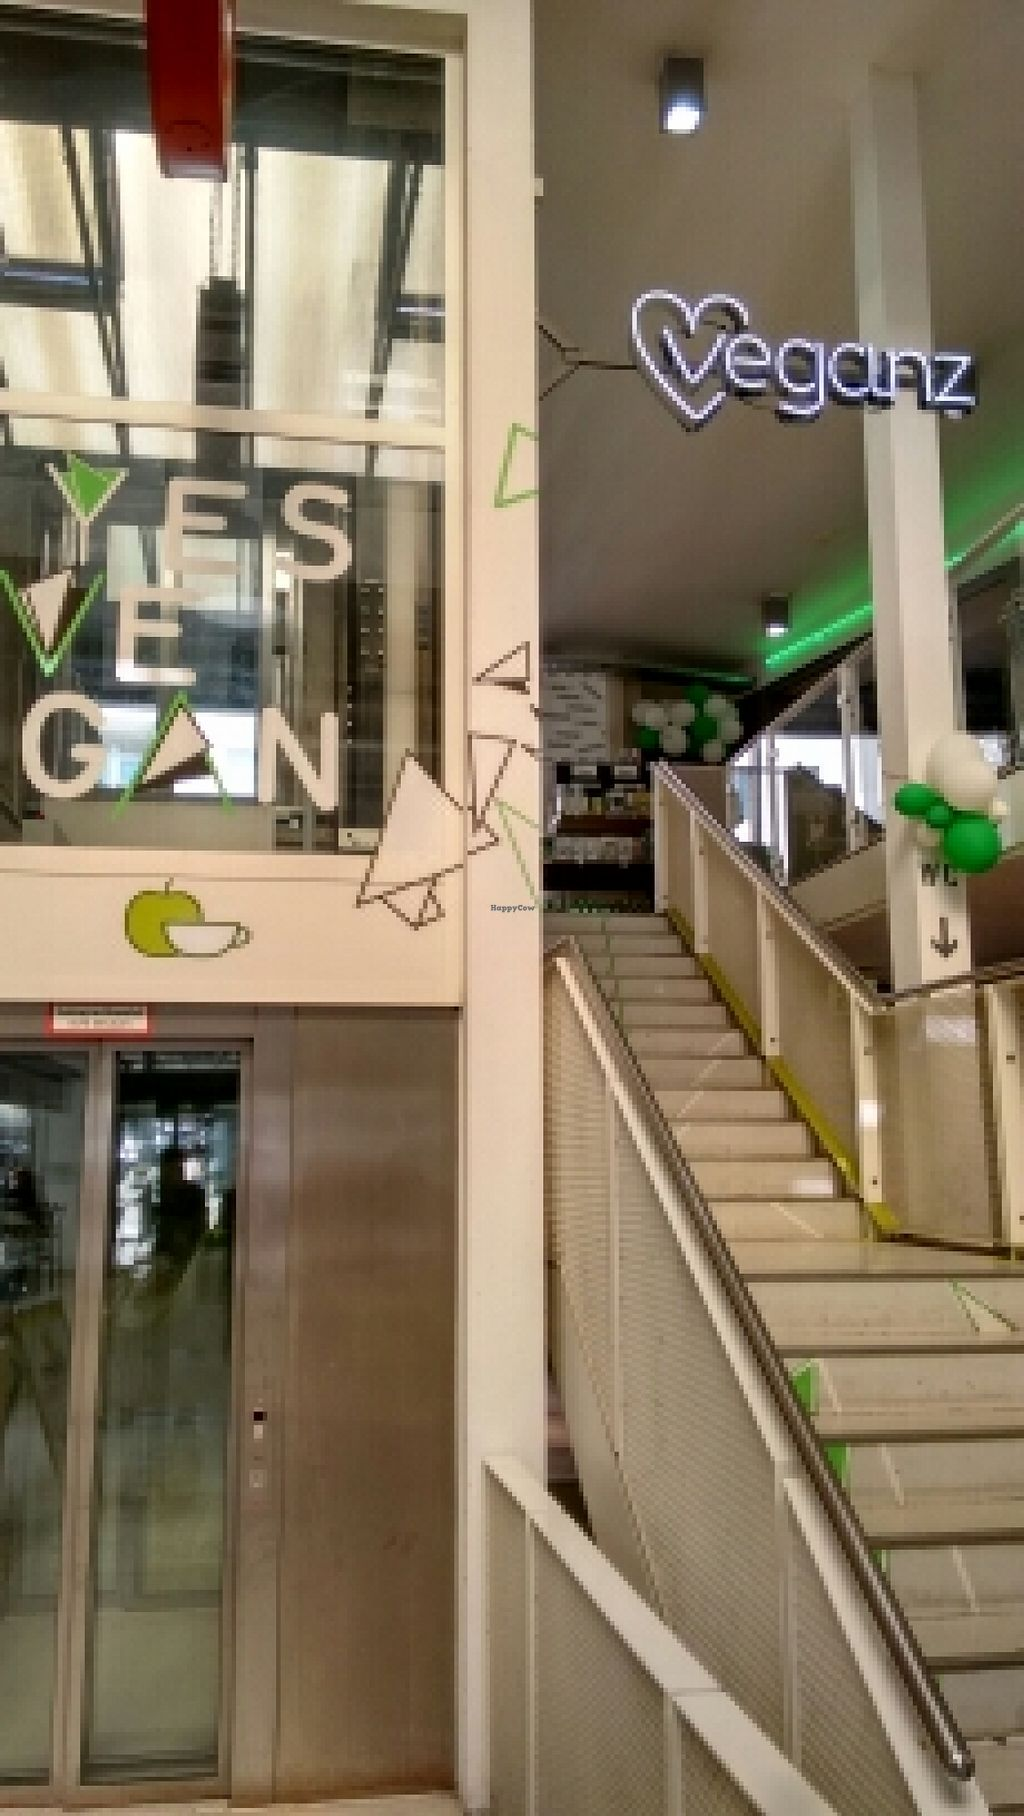 "Photo of Veganz - Berlin Kreuzberg  by <a href=""/members/profile/craigmc"">craigmc</a> <br/>upstairs now! <br/> March 29, 2016  - <a href='/contact/abuse/image/63264/141736'>Report</a>"